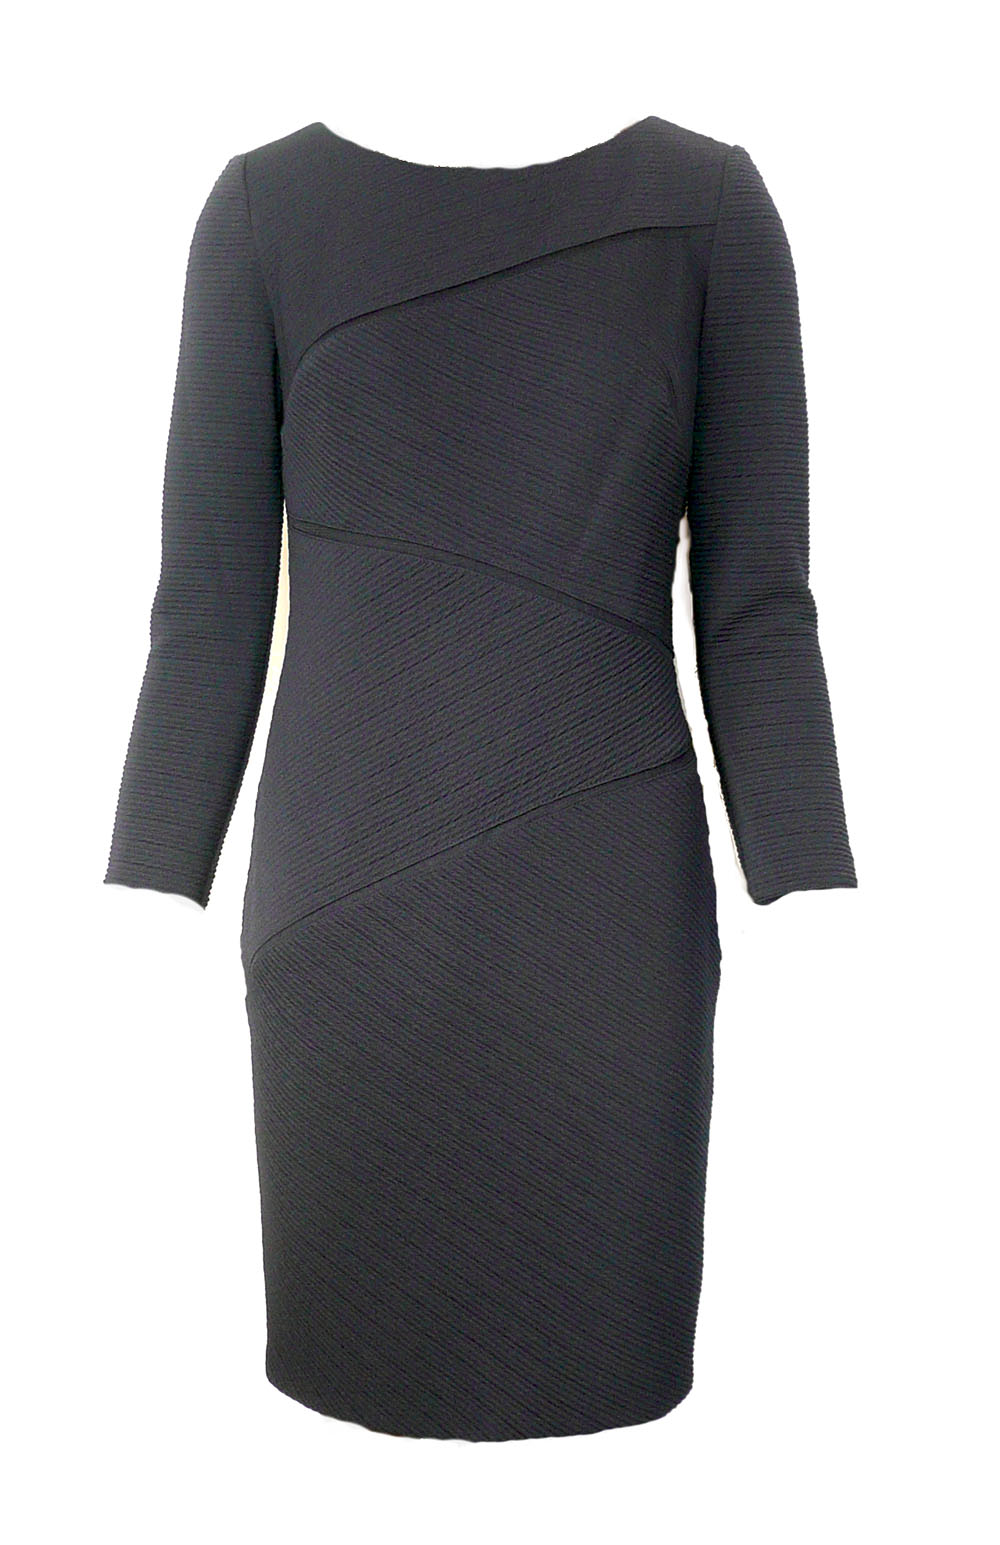 dress navy rib ls.jpg